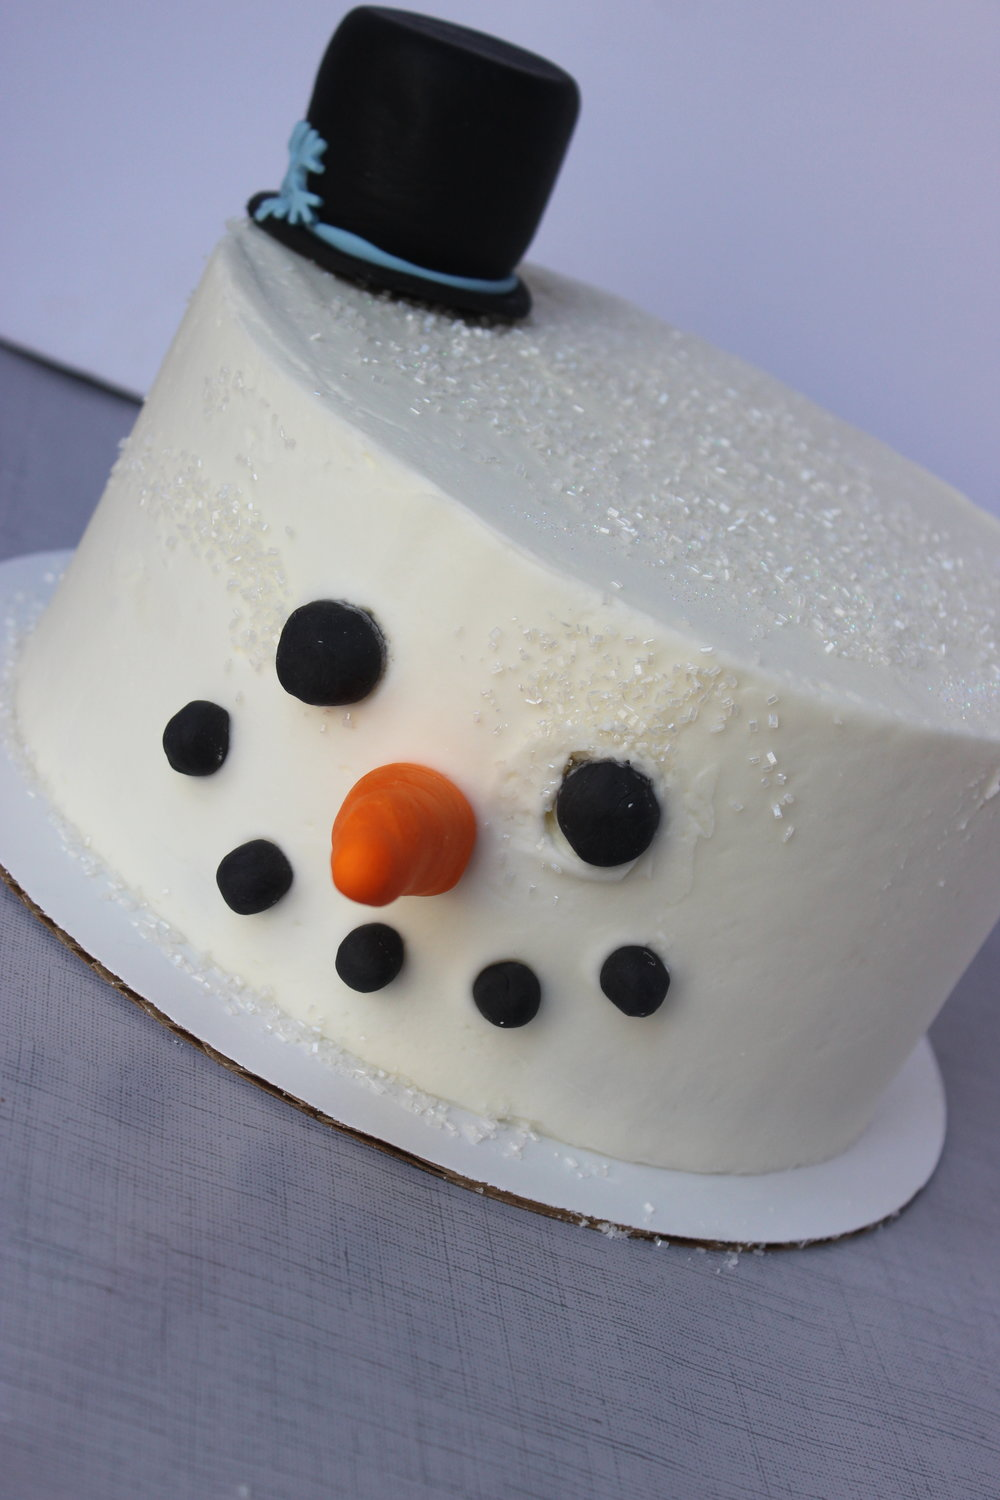 Frosty The Snowman Cake - $45 6 inch$55 8 inch$65 9 inch